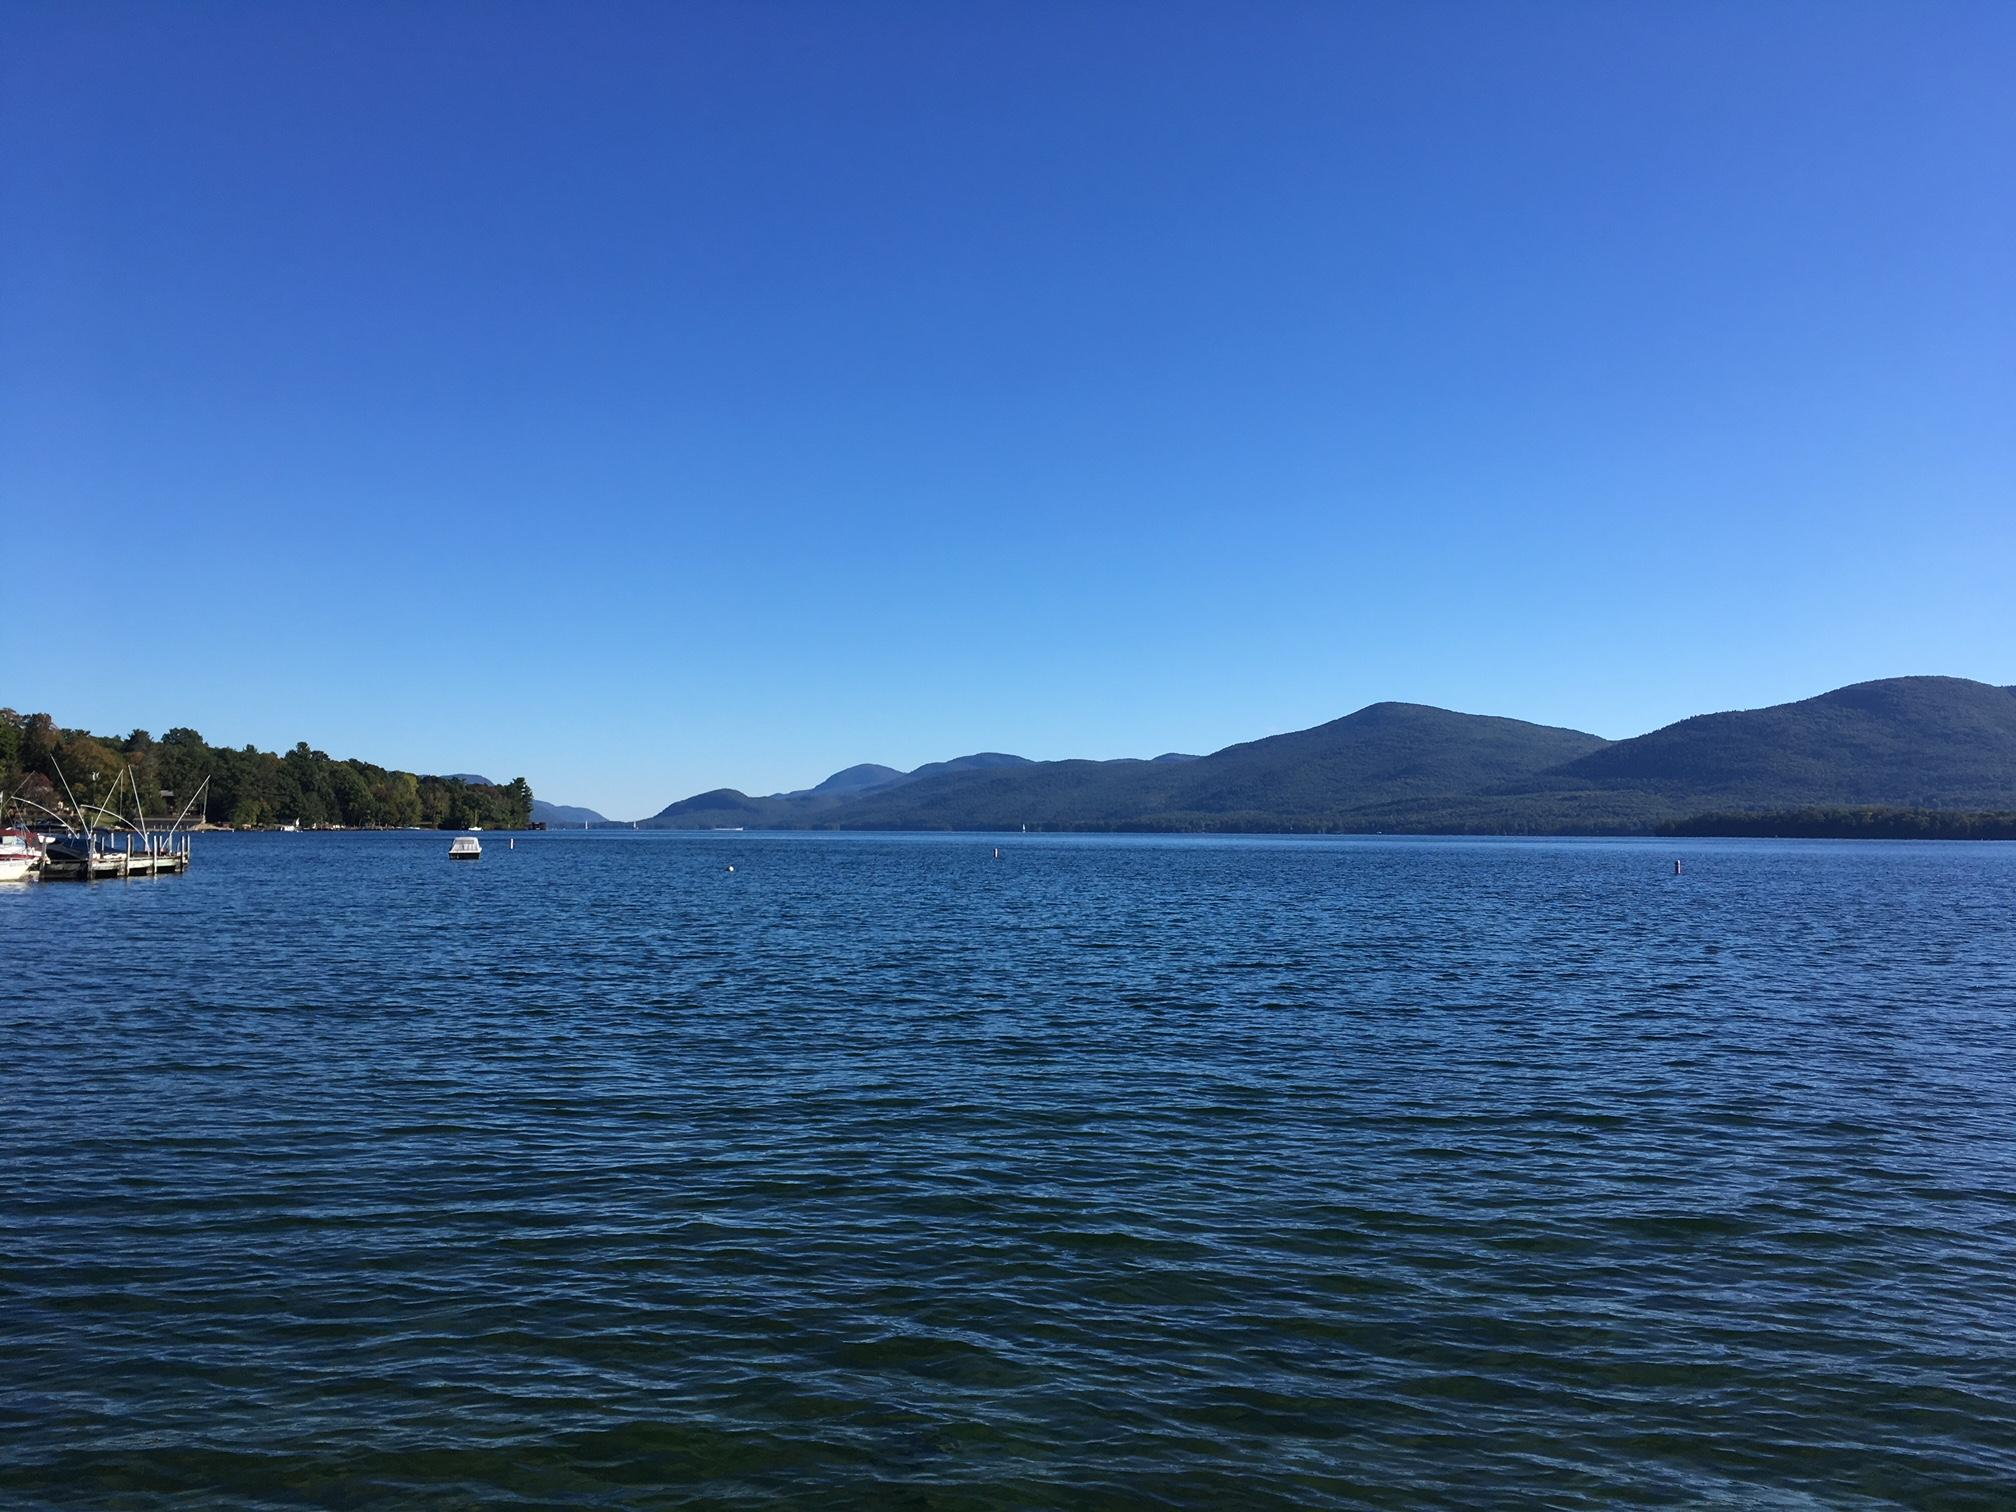 View of Lake George